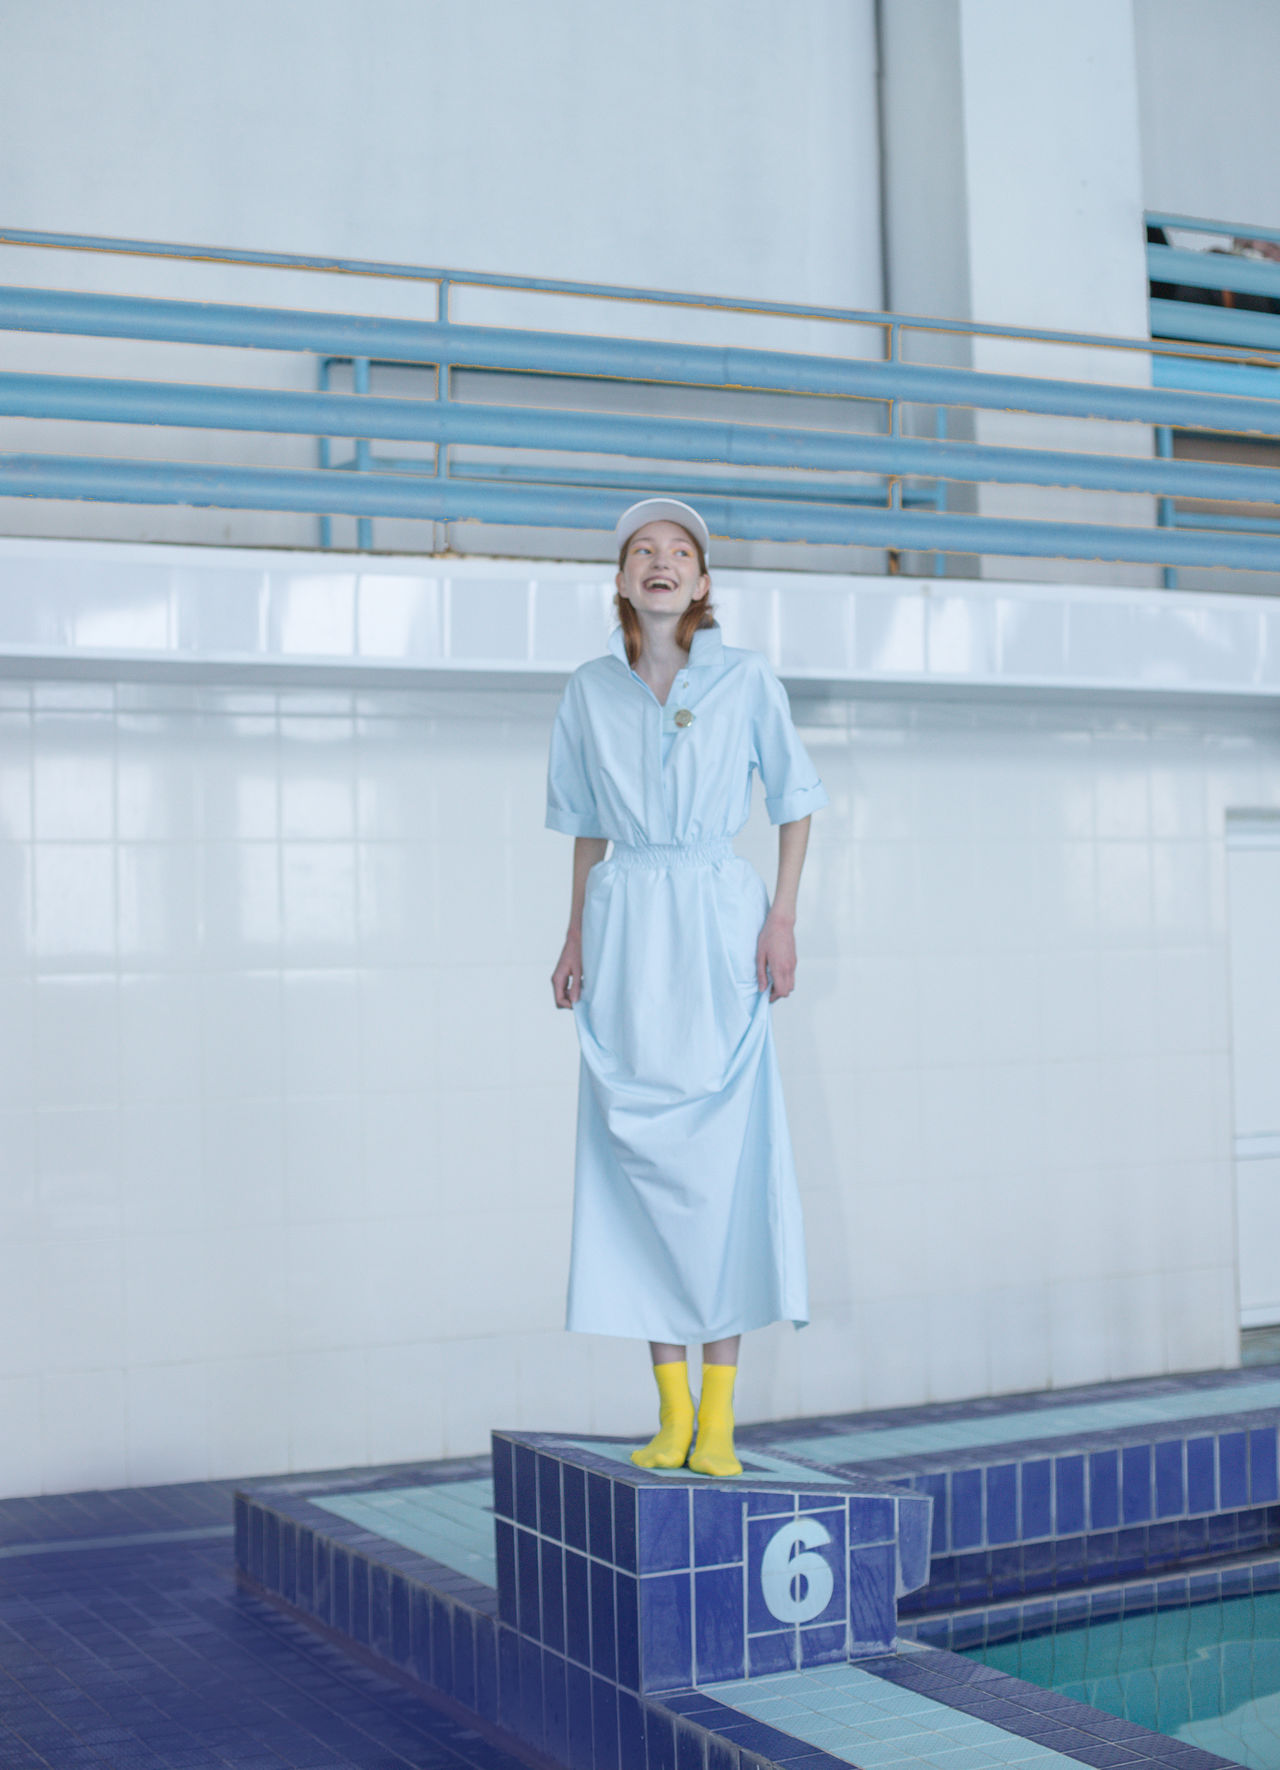 Smiling teenage girl looking away while standing at poolside against wall